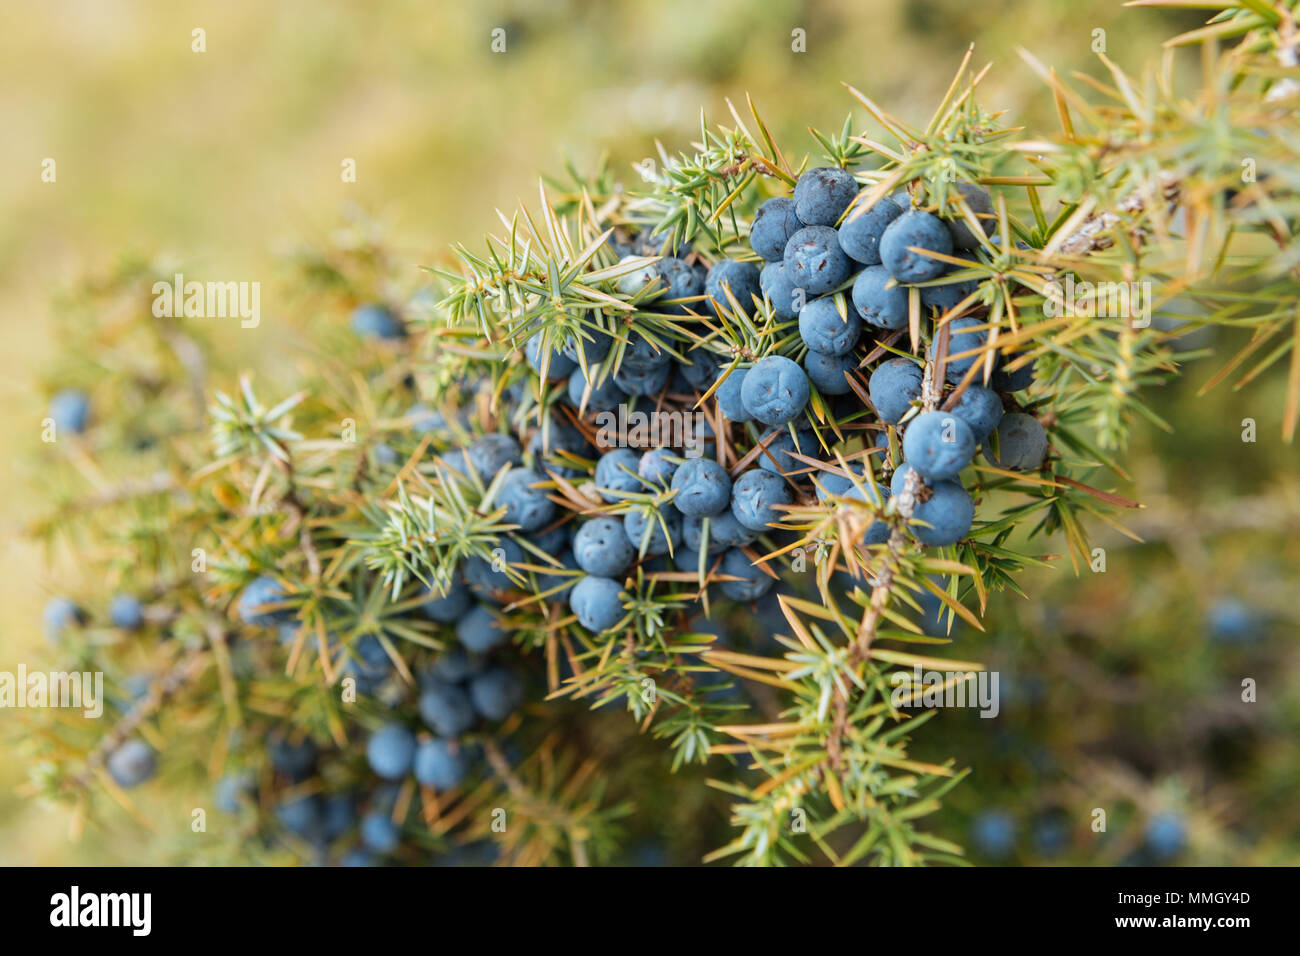 Close up of a spoon filled with wild juniper berries (Juniperus Communis) - Stock Image